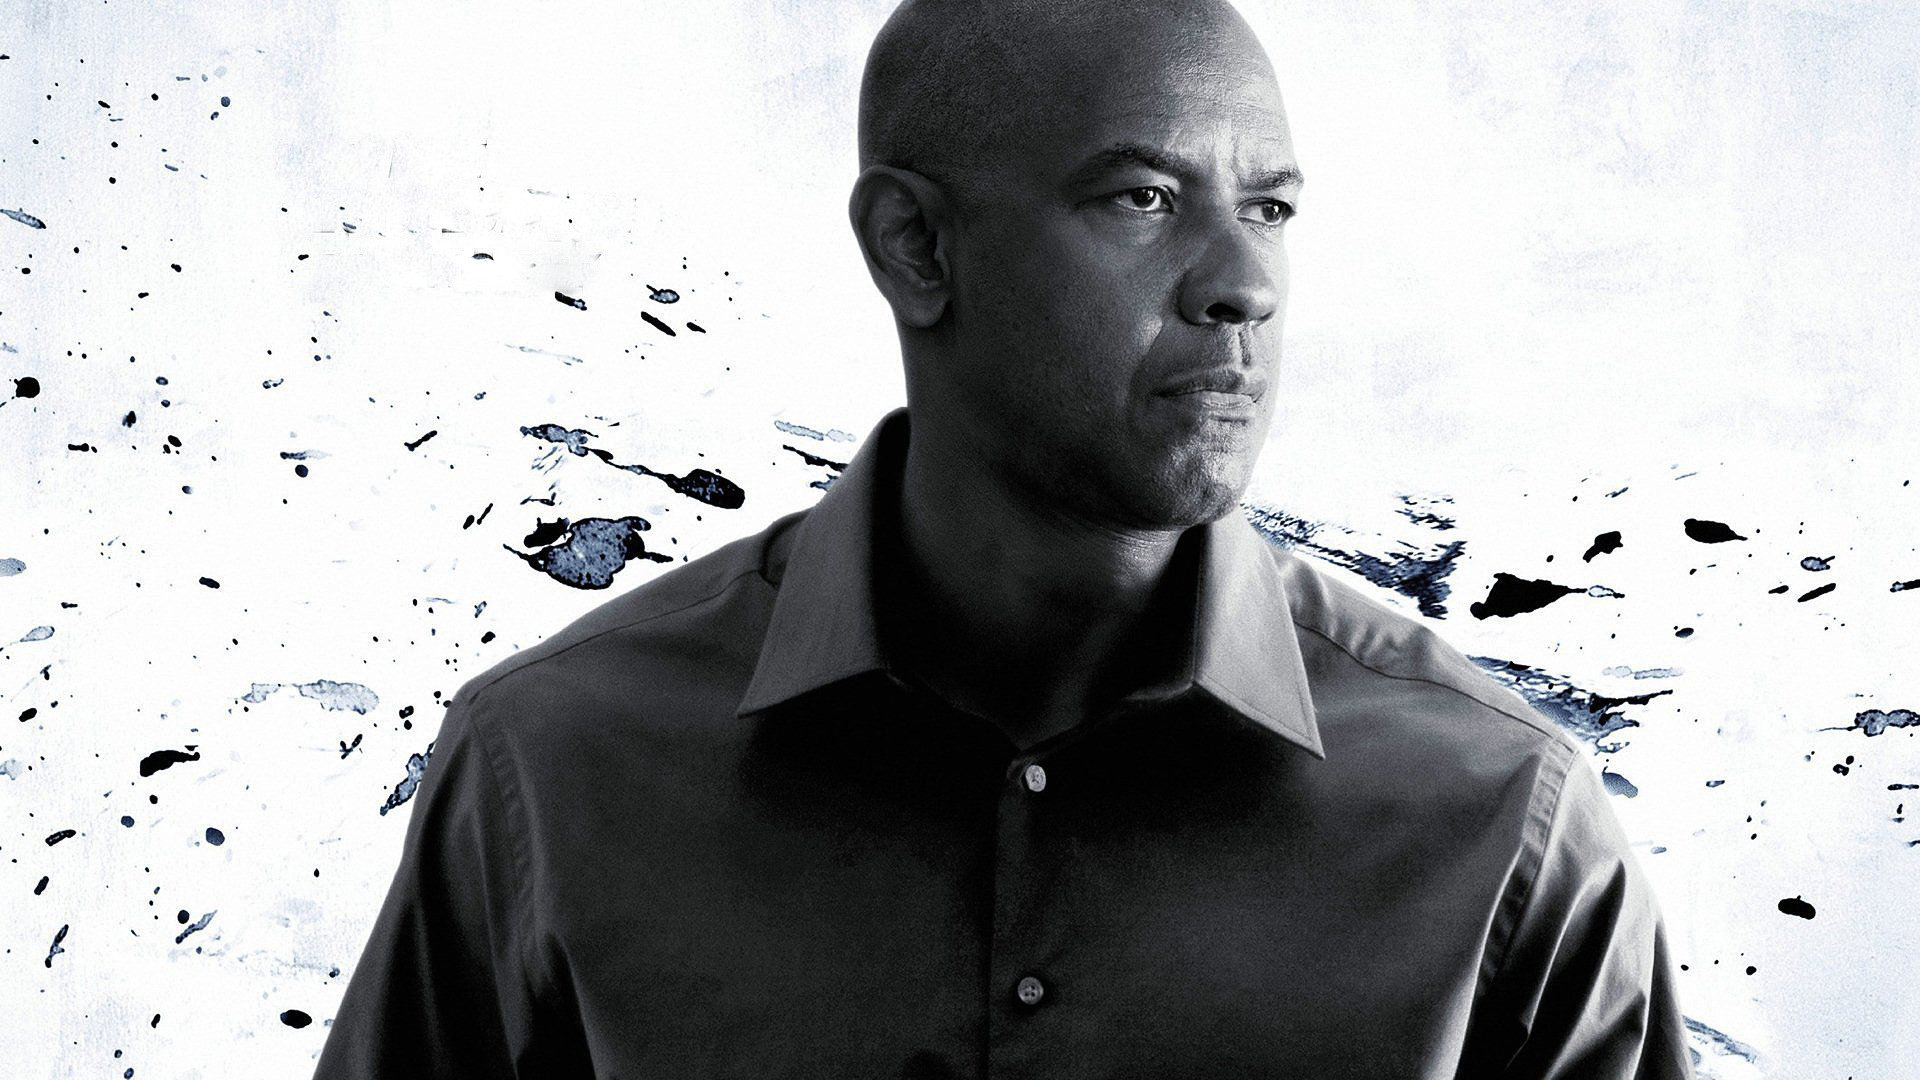 High resolution The Equalizer full hd wallpaper ID:75509 for PC